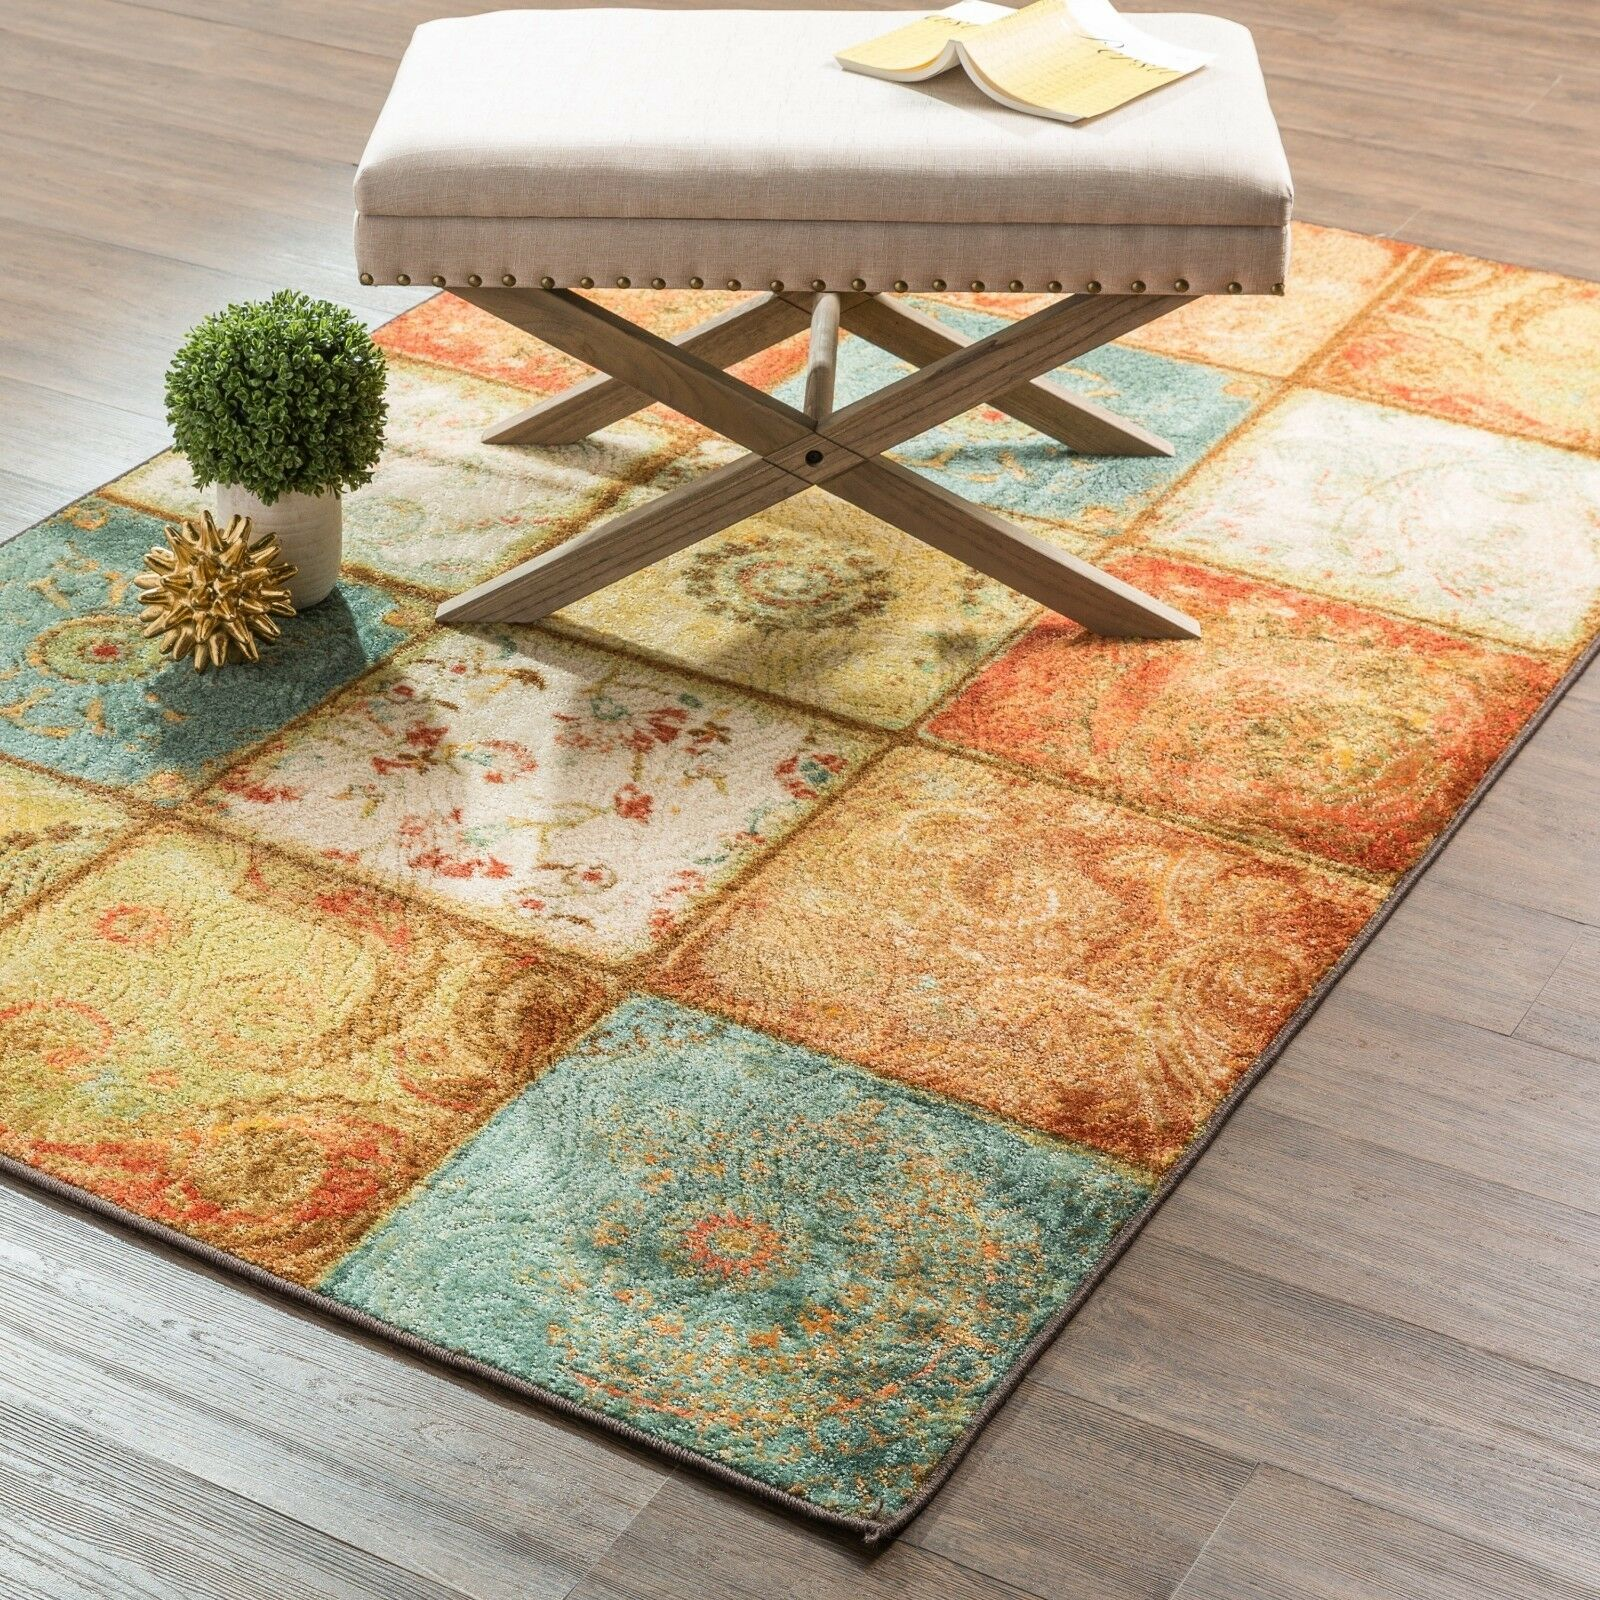 contemporary home offices designs with rugs floor | RUGS AREA RUGS CARPETS 8x10 RUG FLOOR BIG MODERN COOL ...